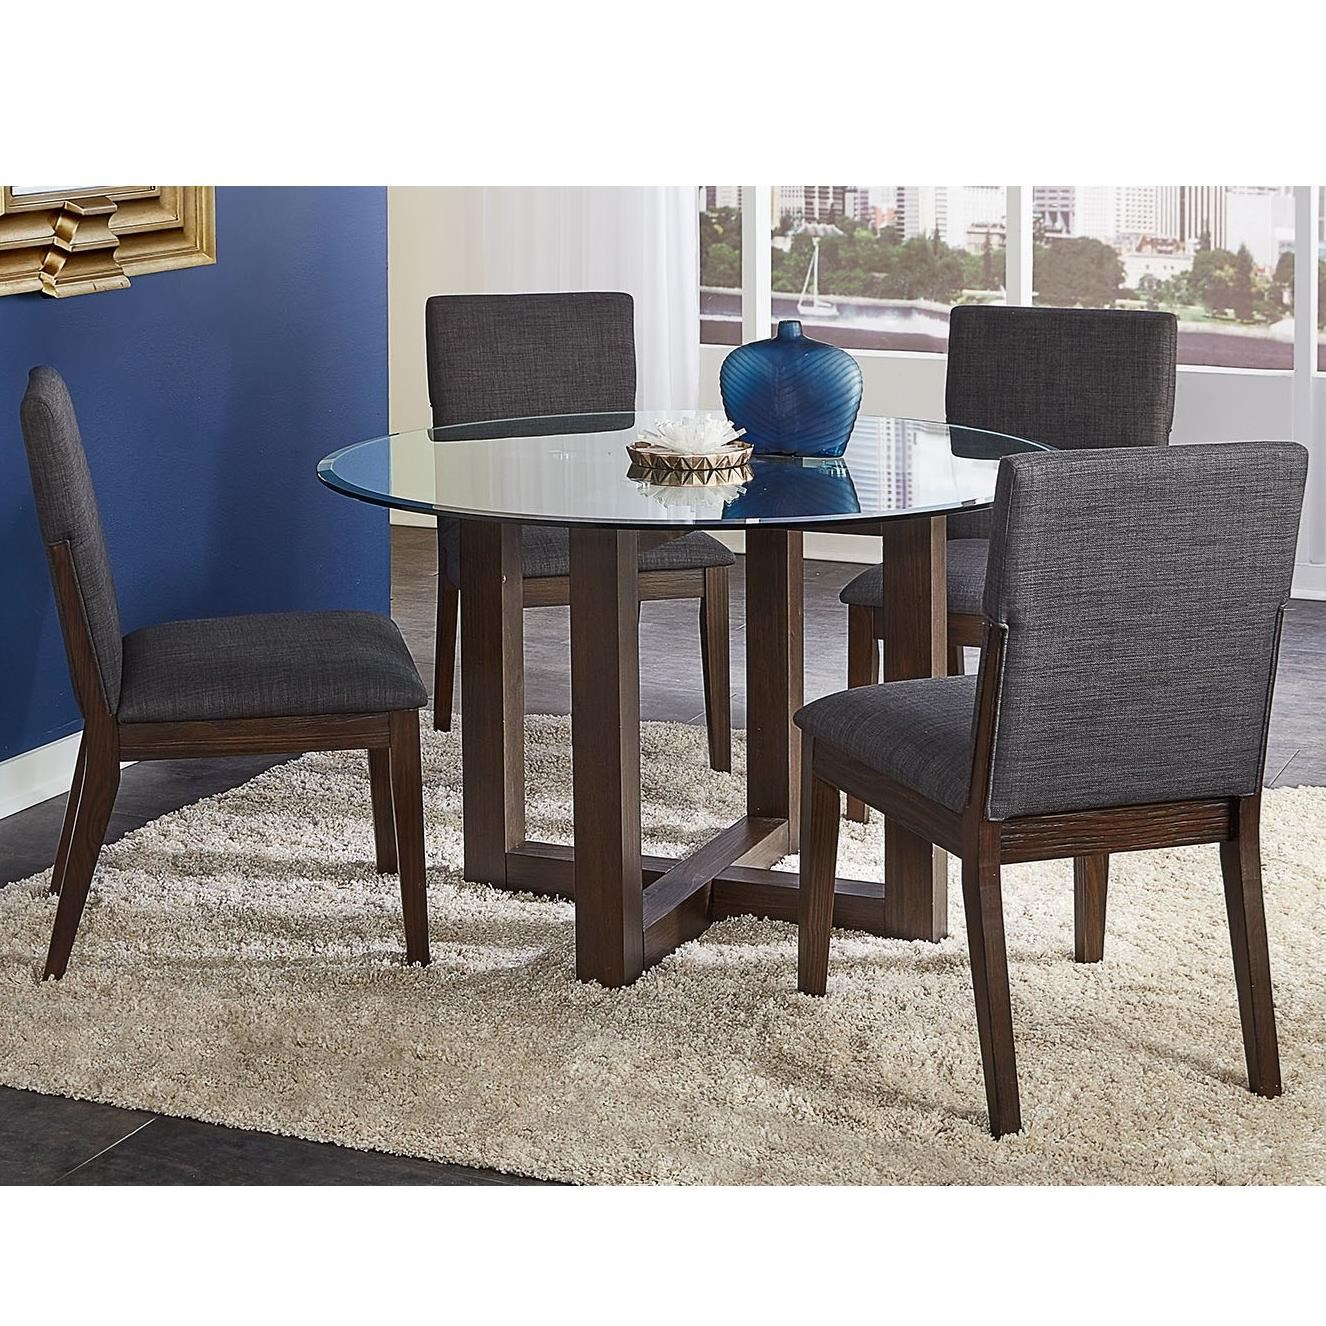 Palm Canyon 5-Piece Table and Chair Set by A-A at Walker's Furniture